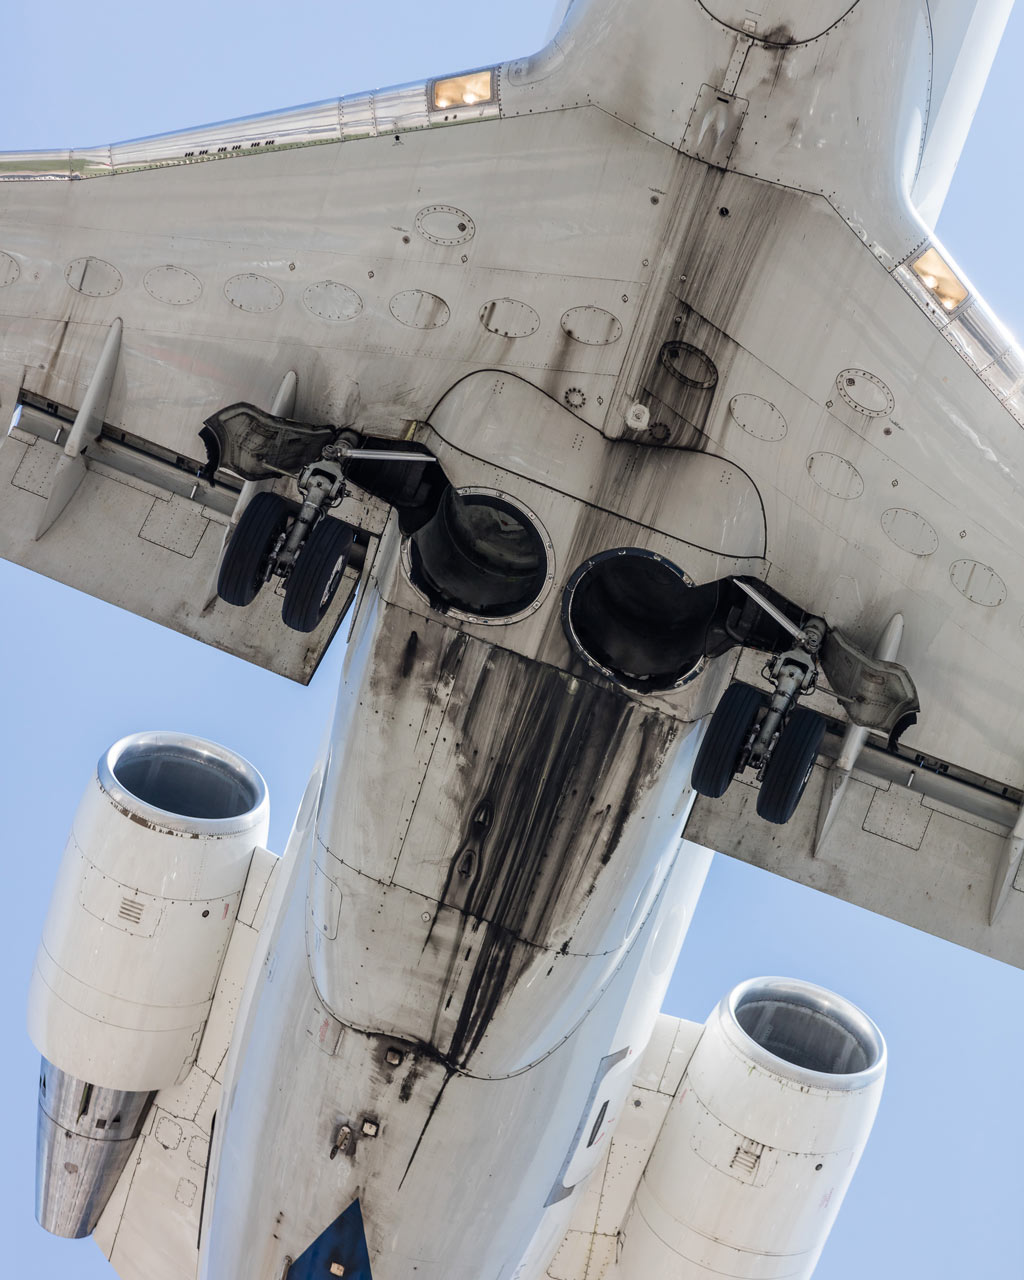 A regional jet approaches LAX airport and displays oil, grease, and dirt accumulated on the bottom of the fuselage.